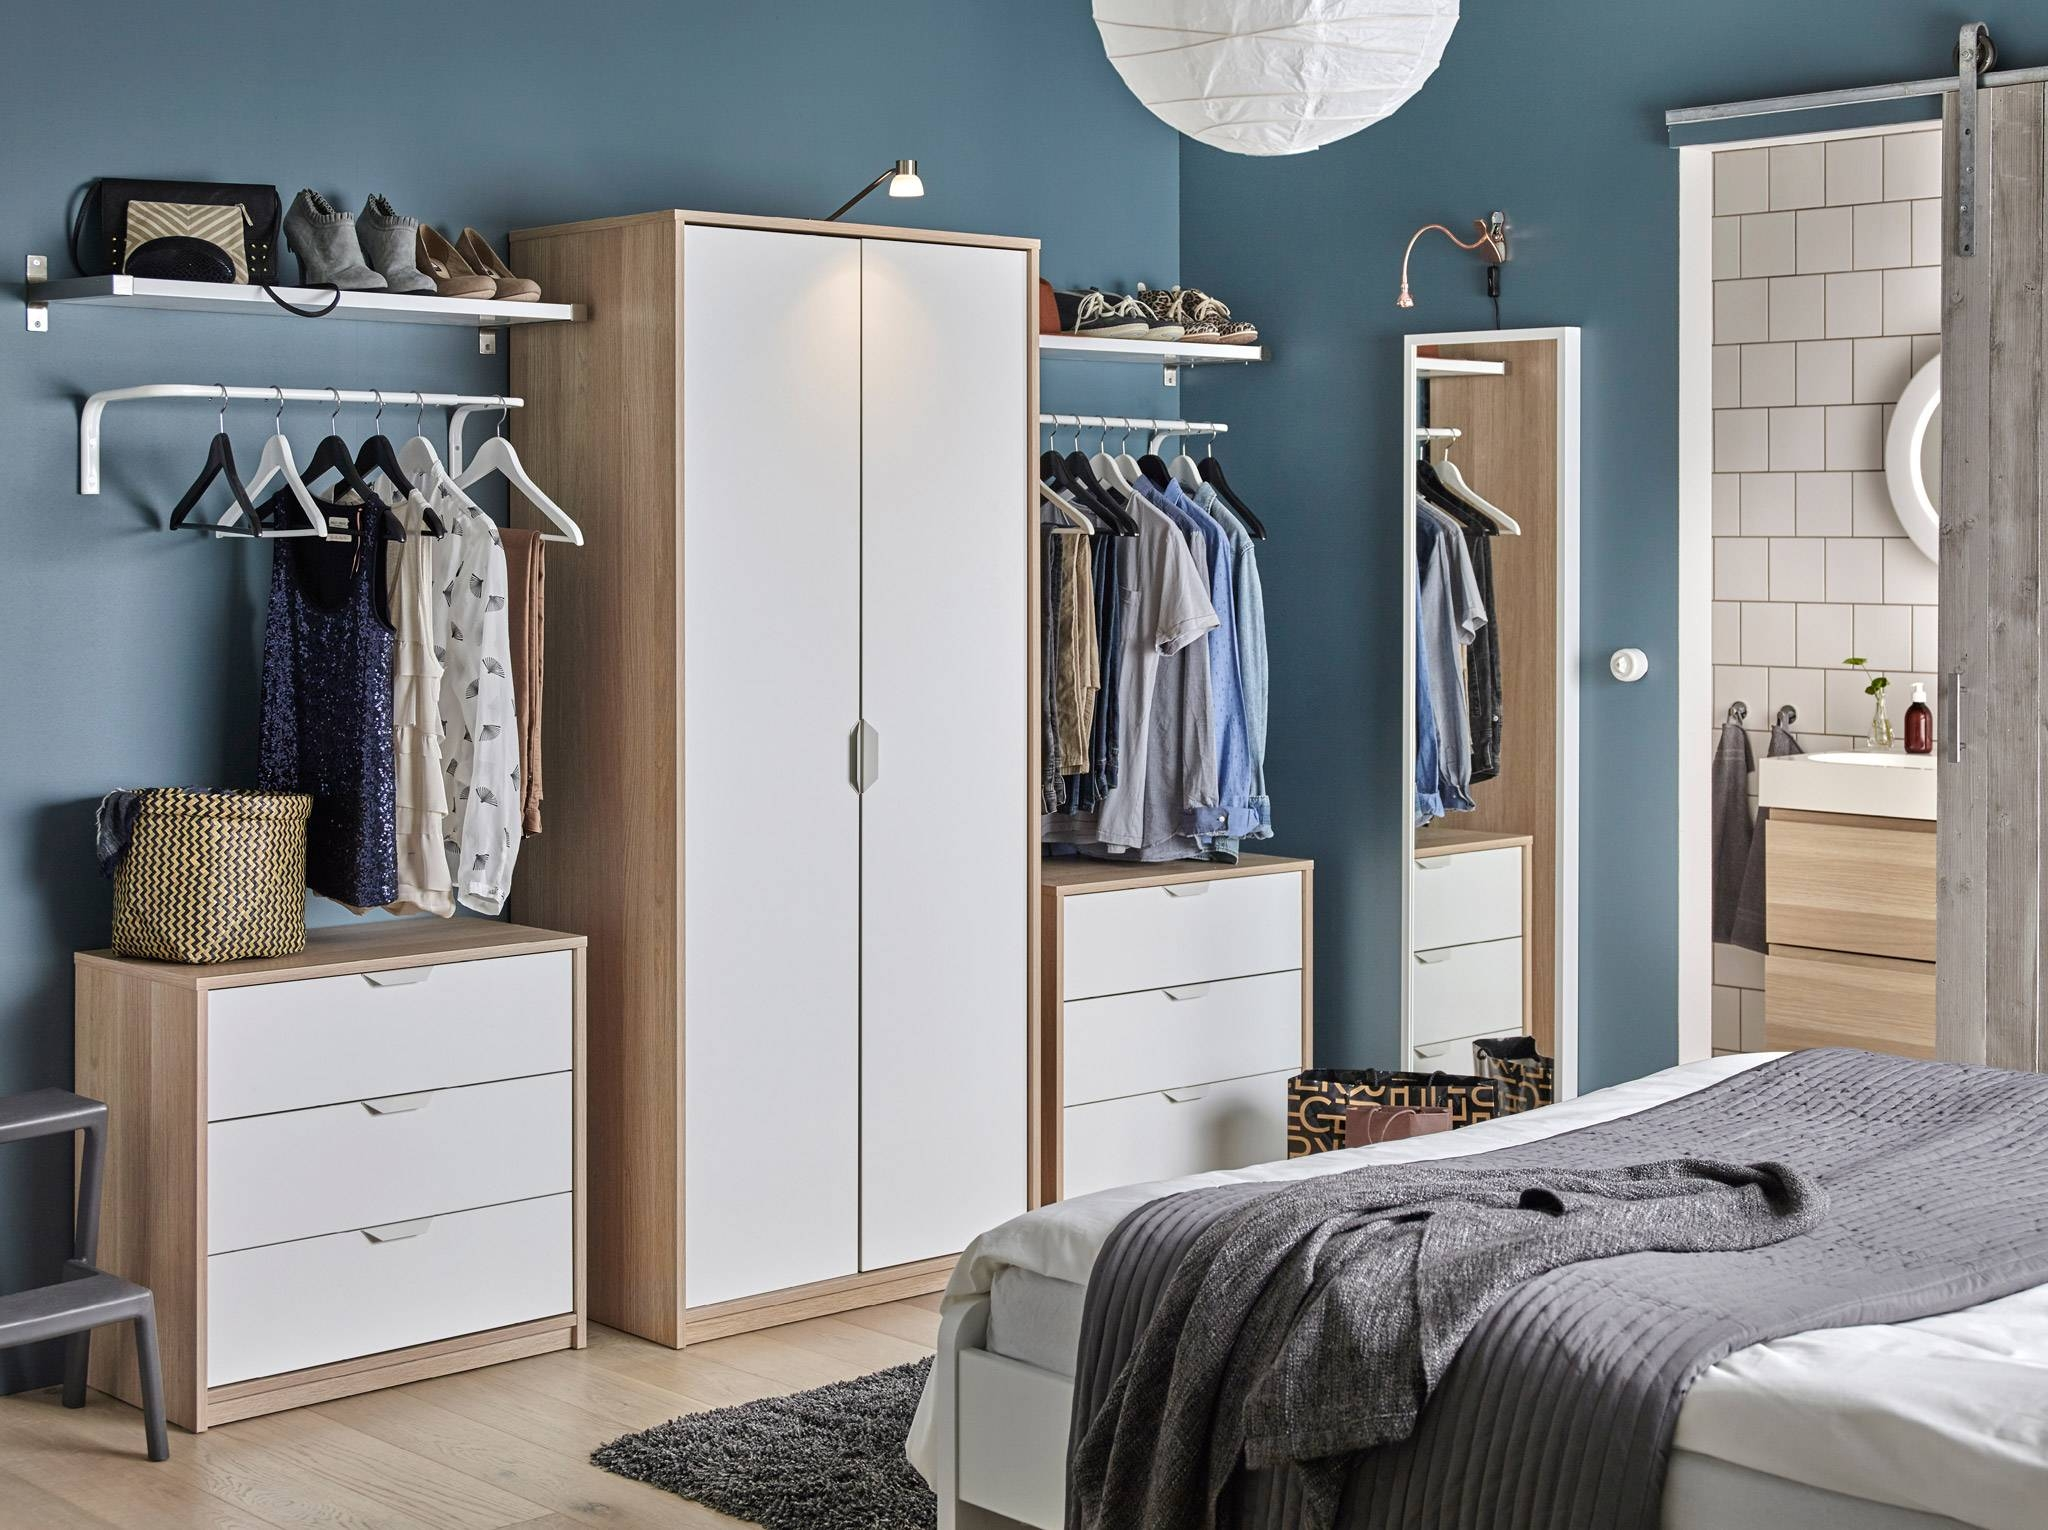 Bedroom Furniture & Ideas | Ikea throughout Over Bed Wardrobes Sets (Image 3 of 15)